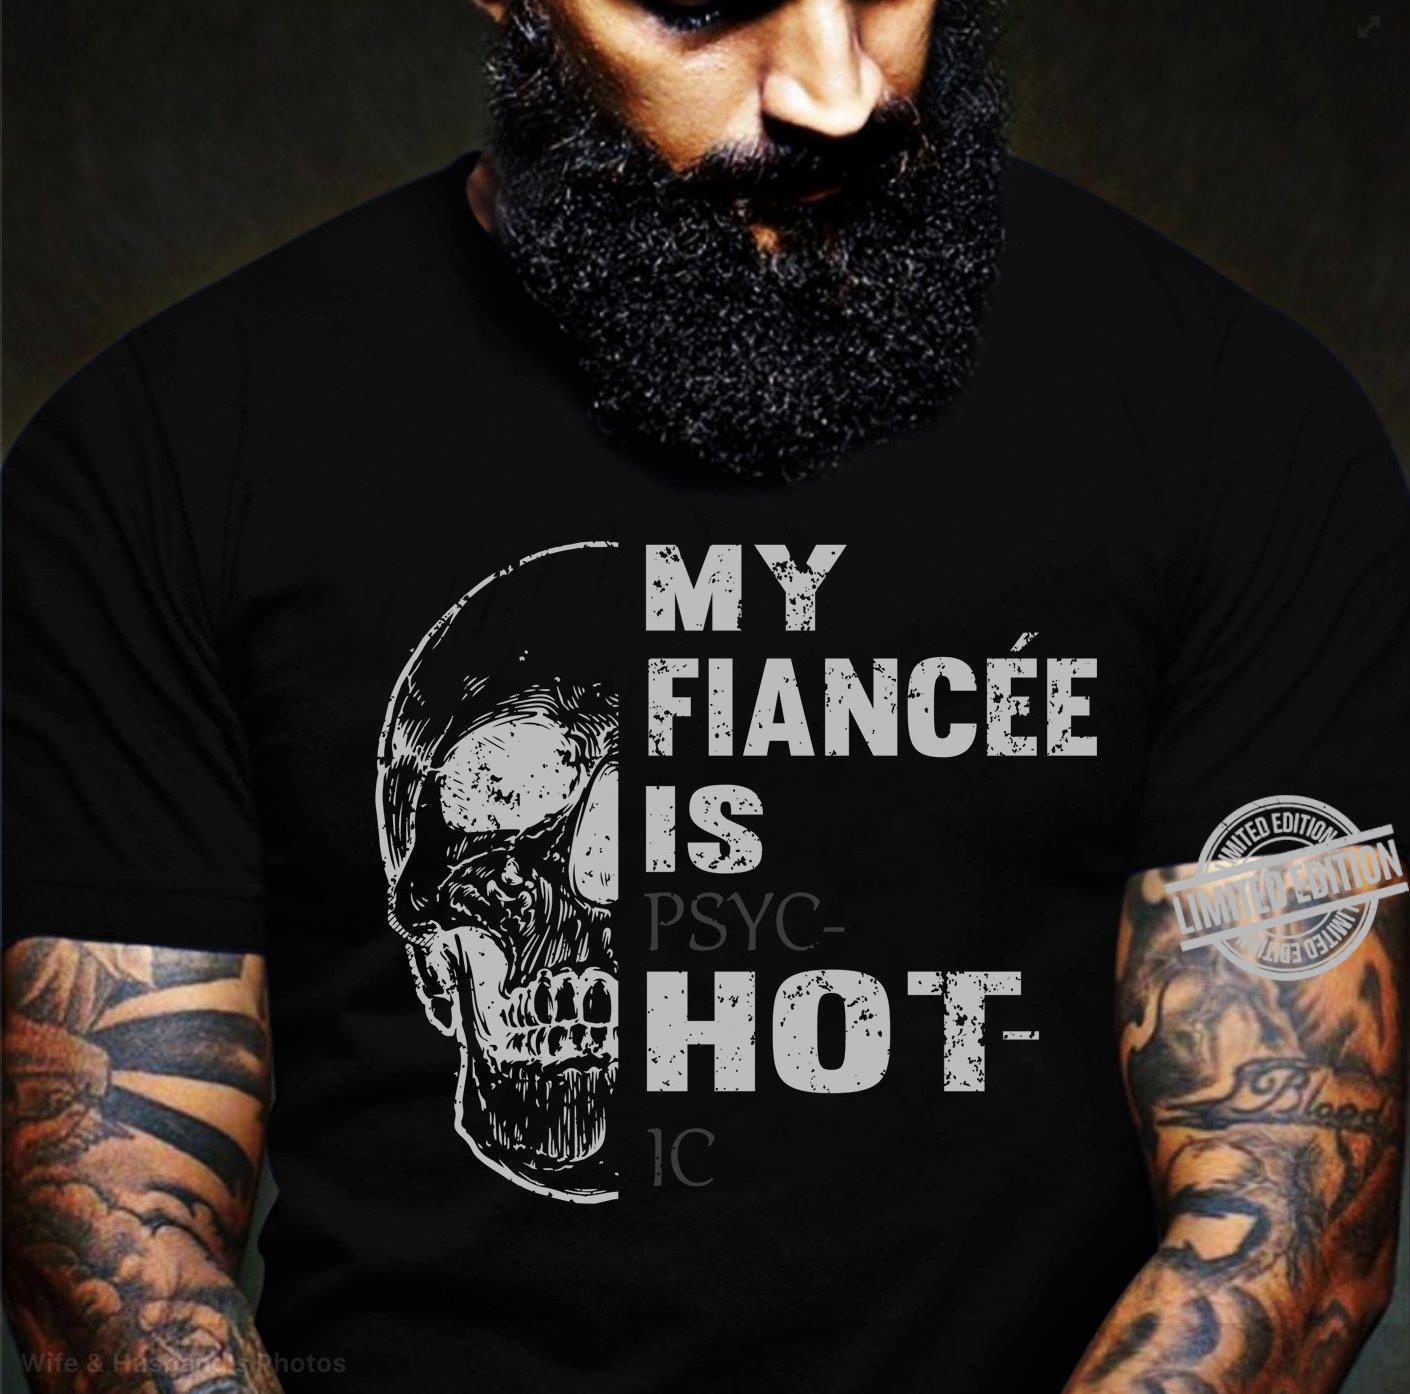 My Fiancee Is Psyc Hot Ic Shirt